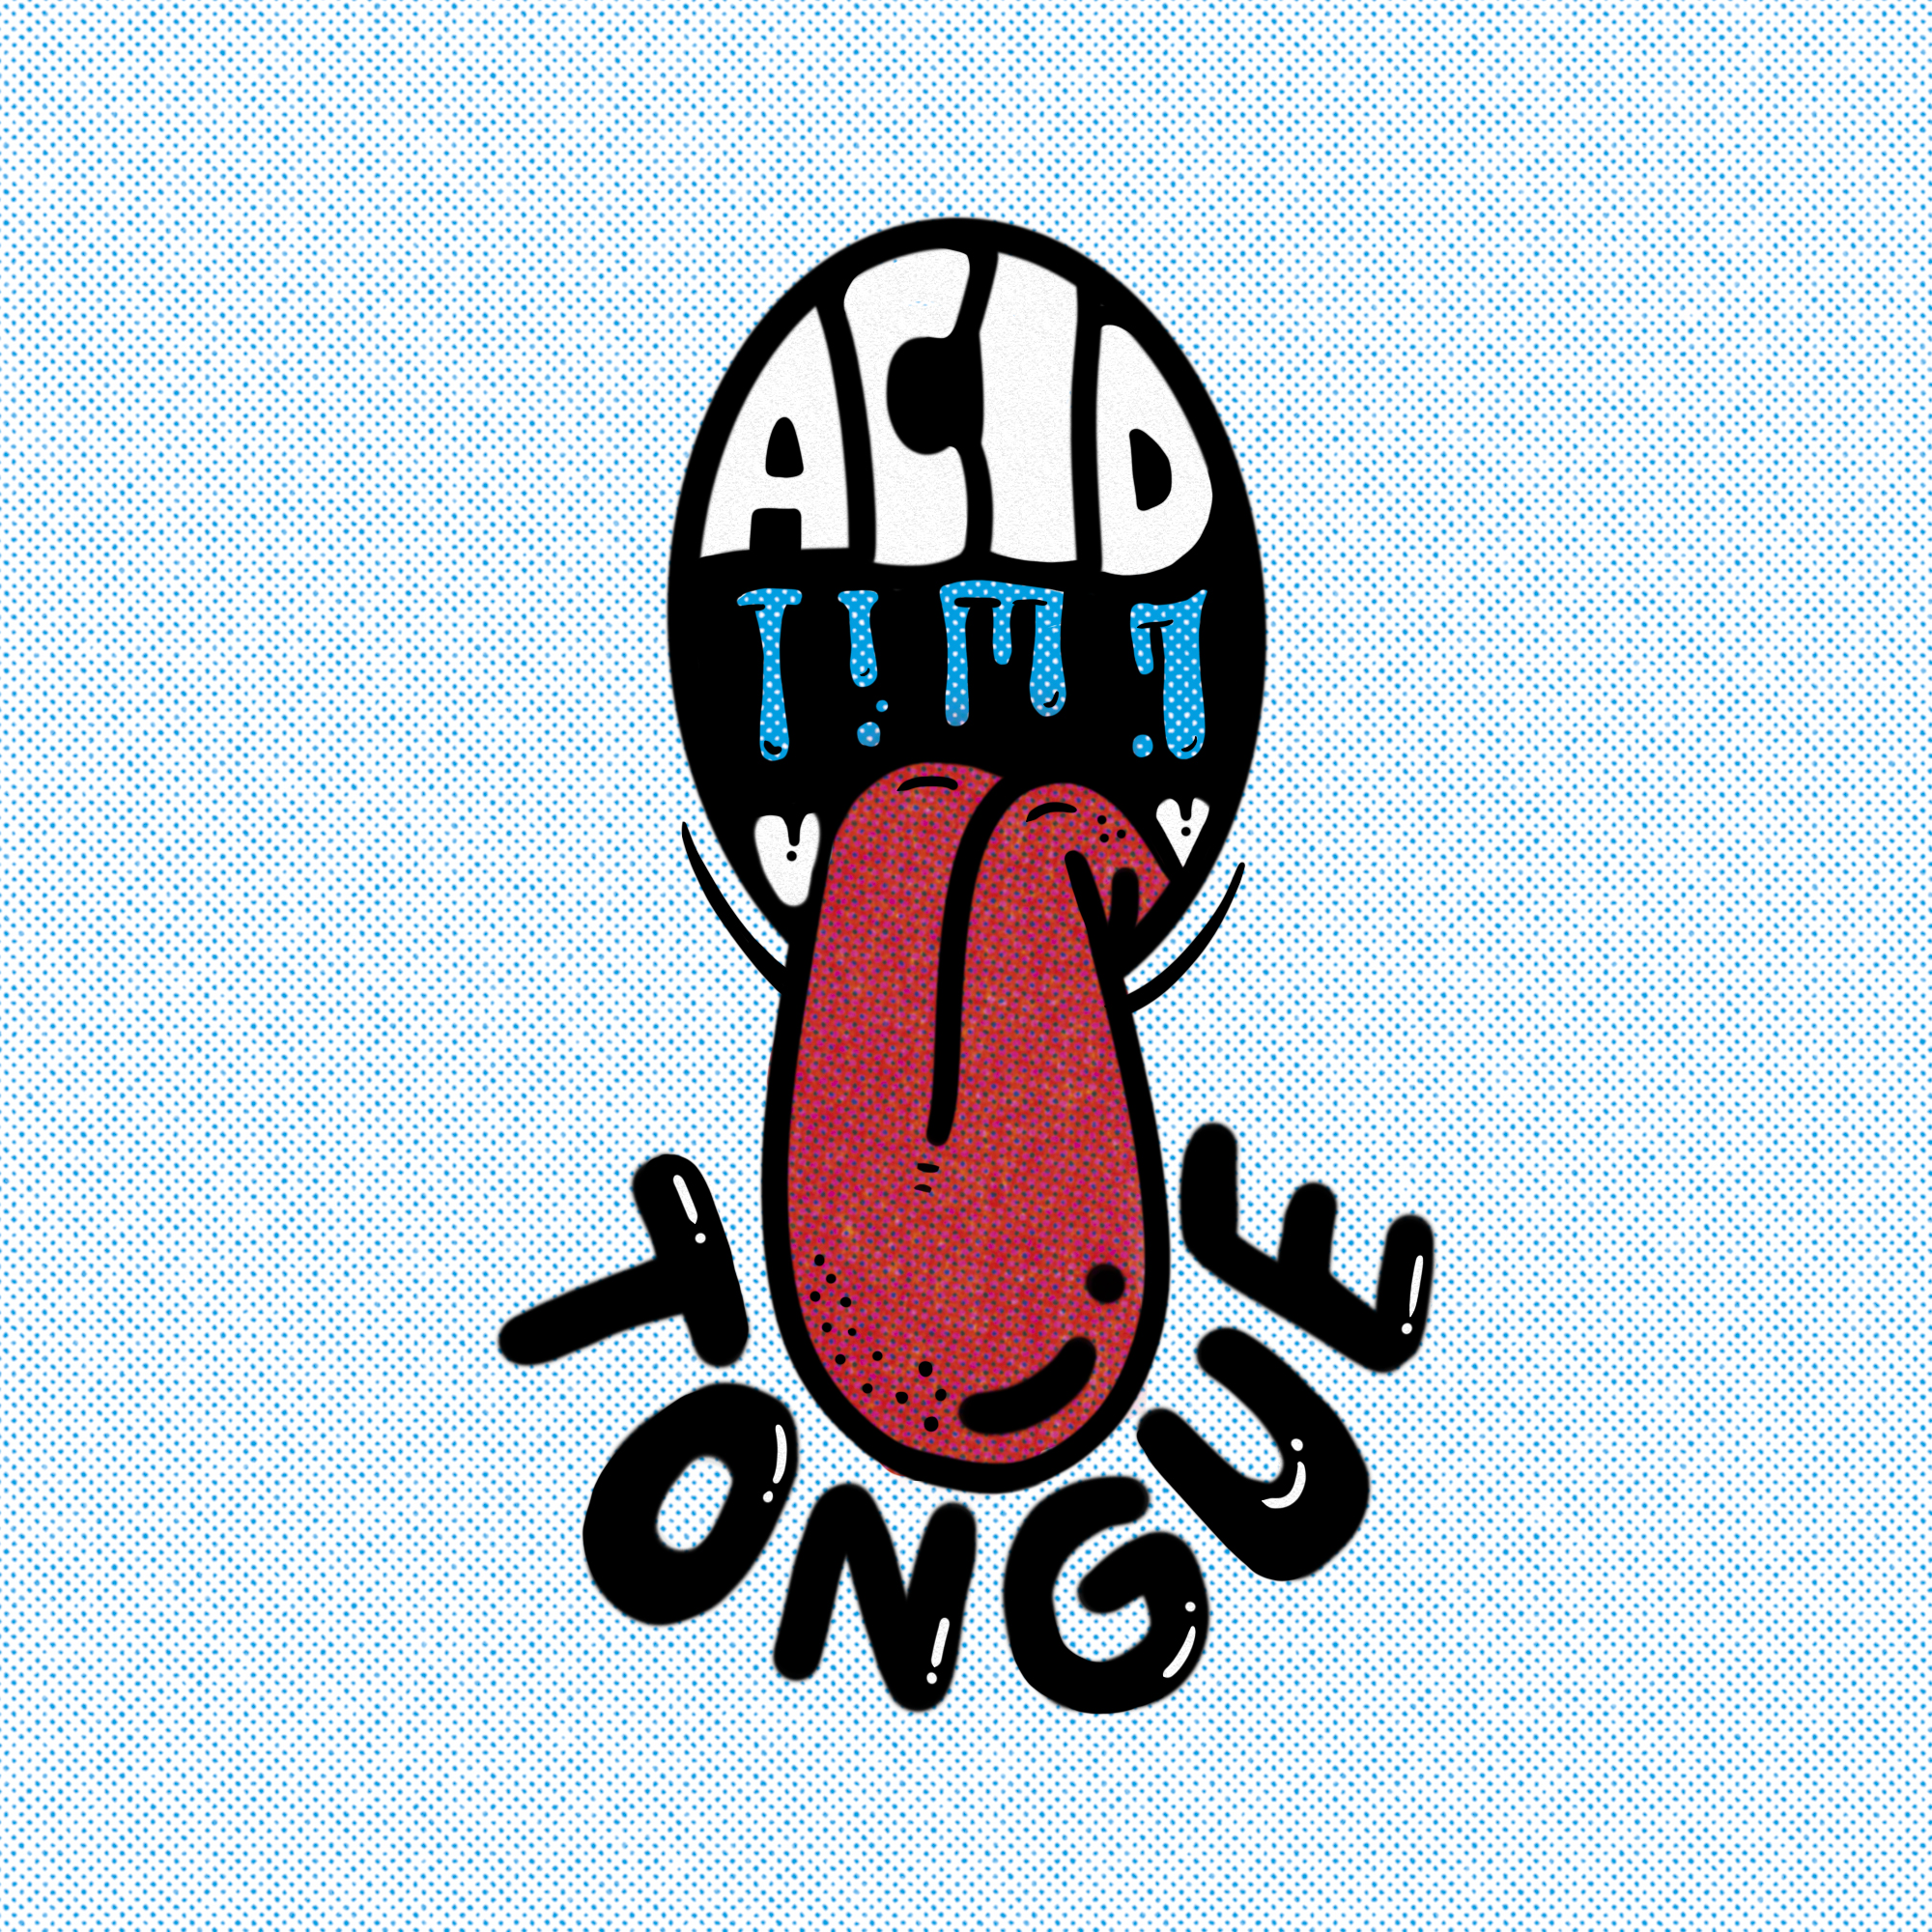 Acid Tongue T-Shirt Colored.jpg